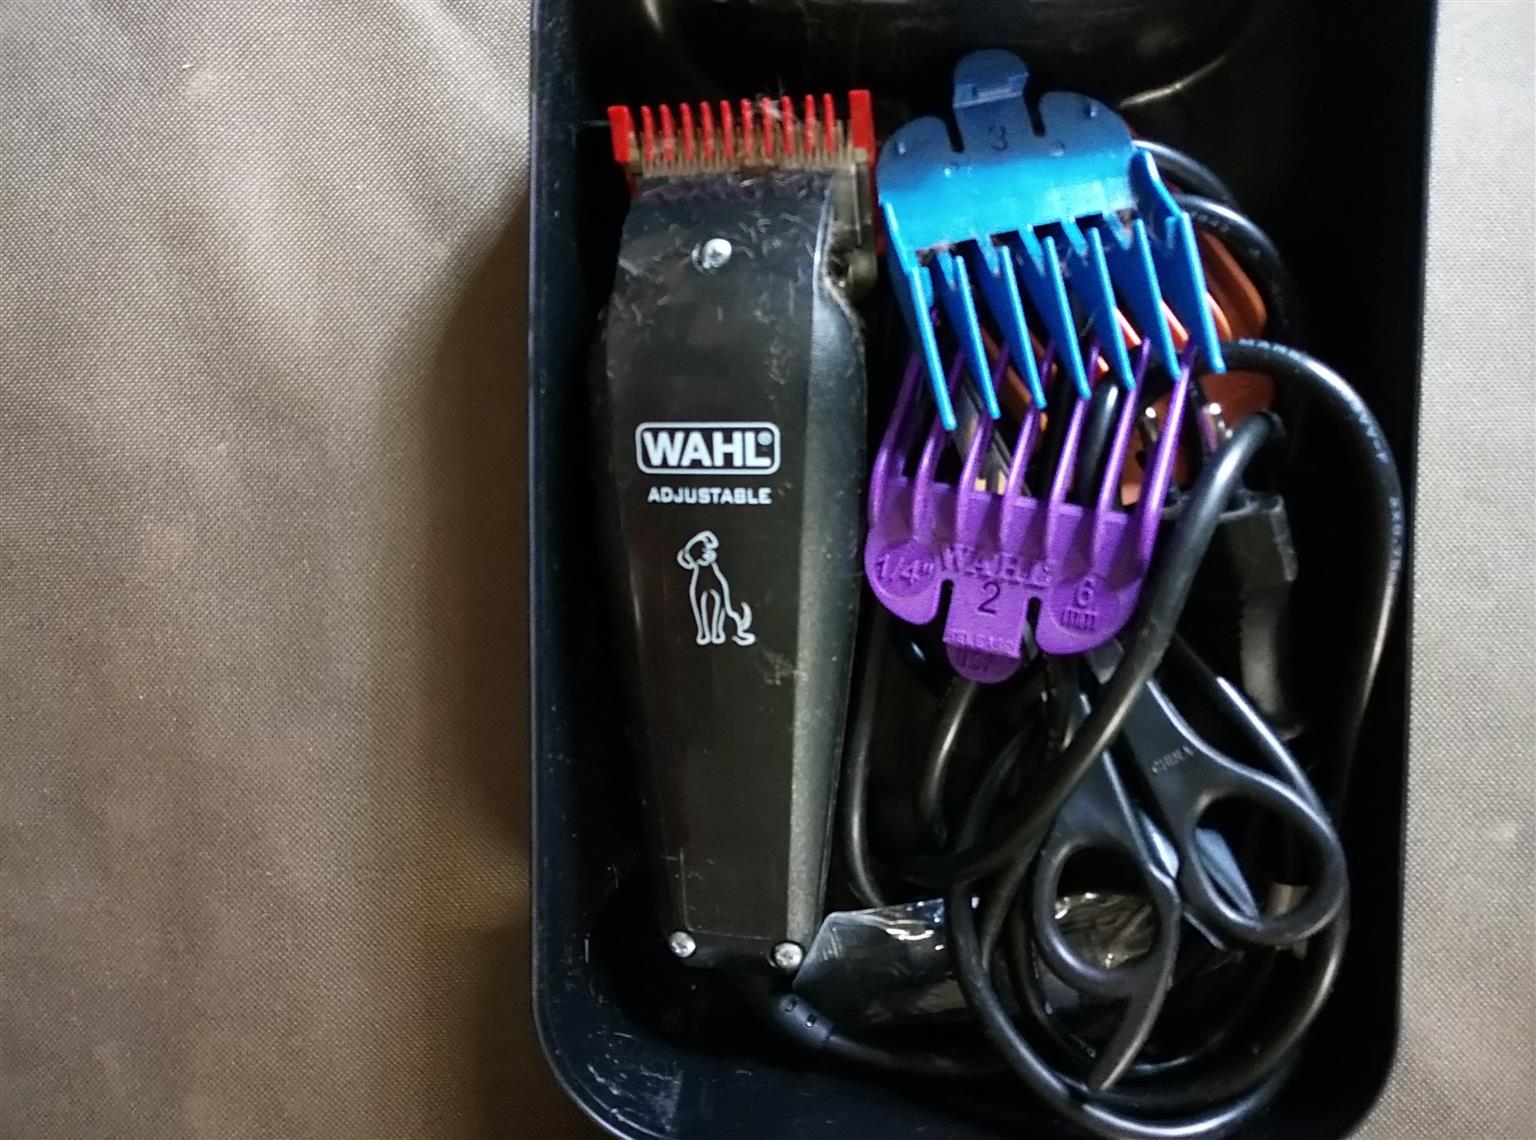 Animal clippers wahl